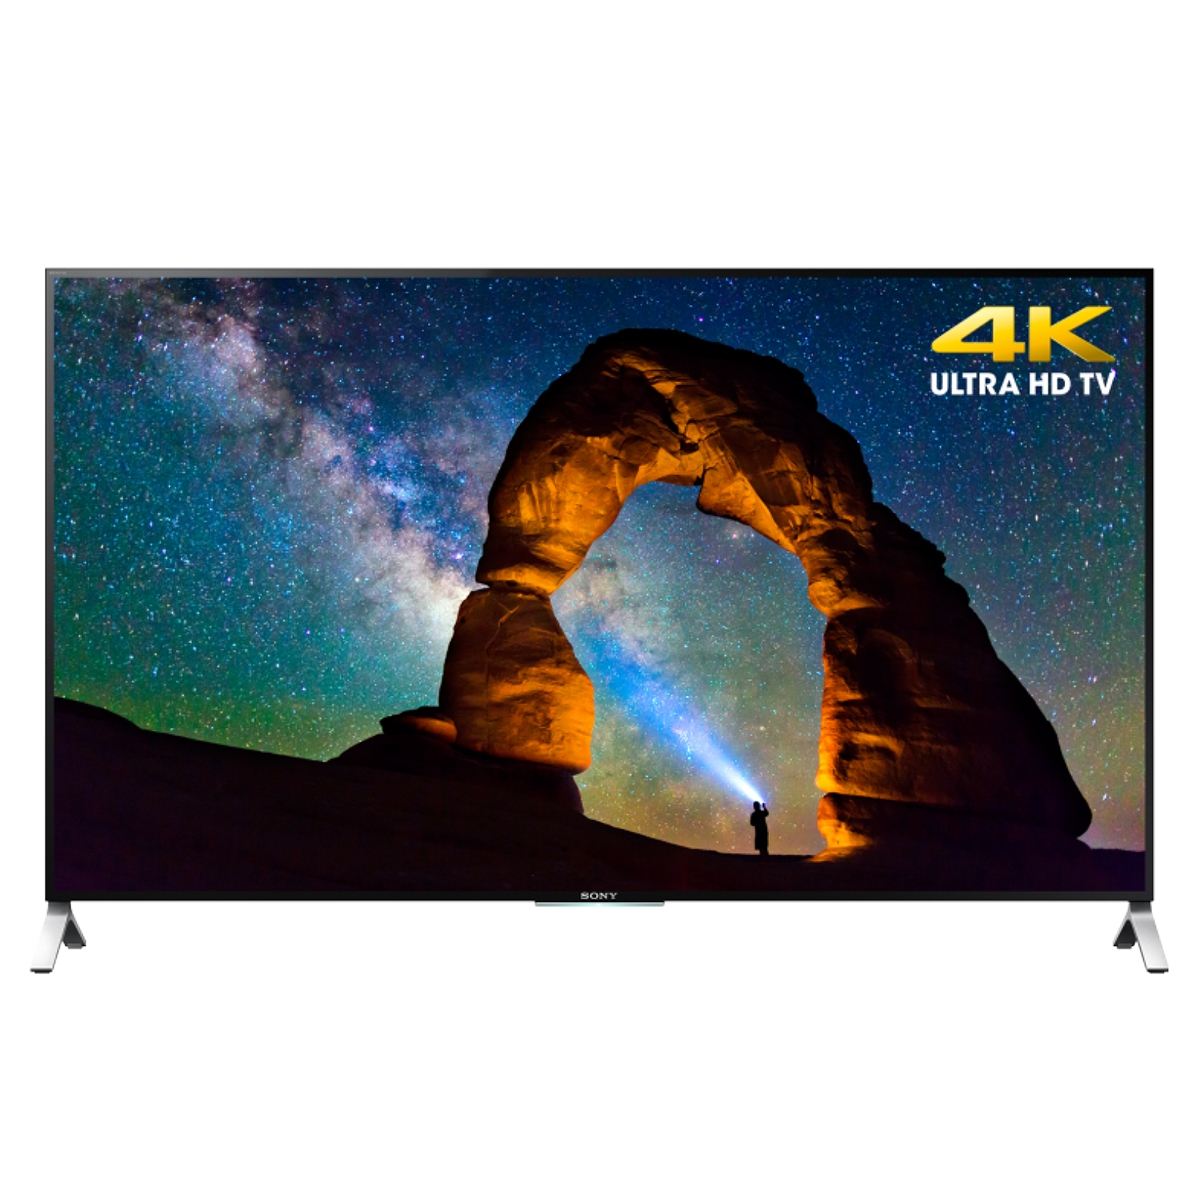 SONY 65INCH CLASS UHD 4K LED SMART HDTV - XBR65X900C - RESIDENTIAL USA VERSION -SONY ORIGINAL PANEL - FULL ONE YEAR MANUFACTURERS WARRANTY!